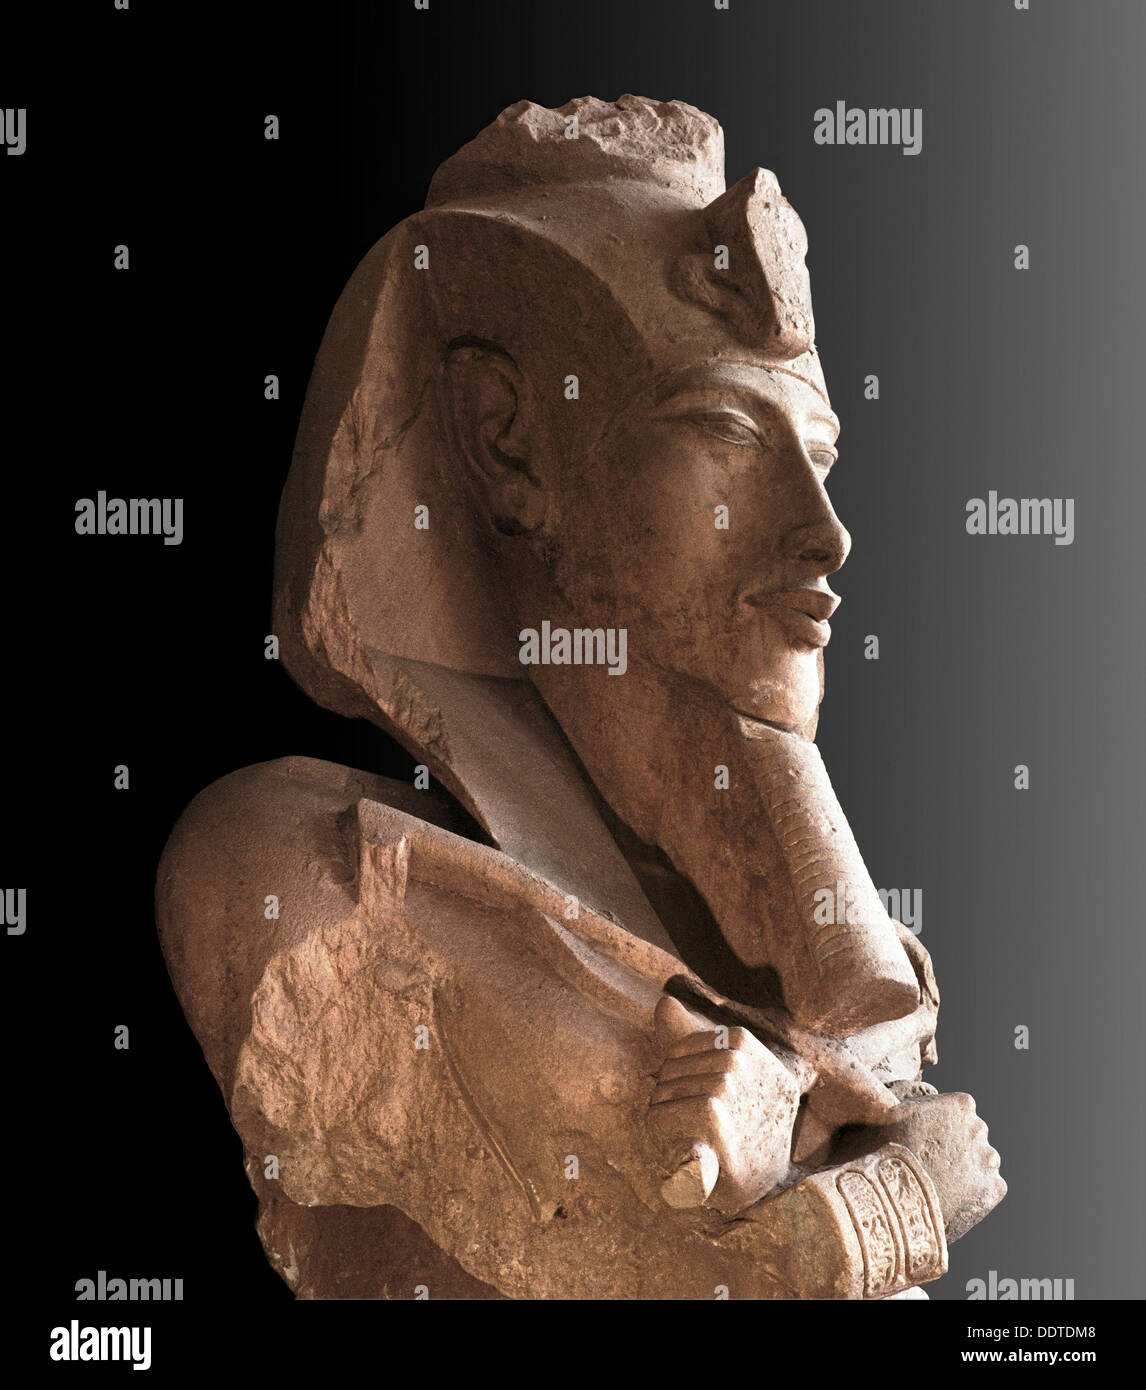 Sandstone bust from a colossal statue of Akhenaten, Ancient Egyptian, Amarna period, c1350-1334 BC. Artist: Werner Forman - Stock Image